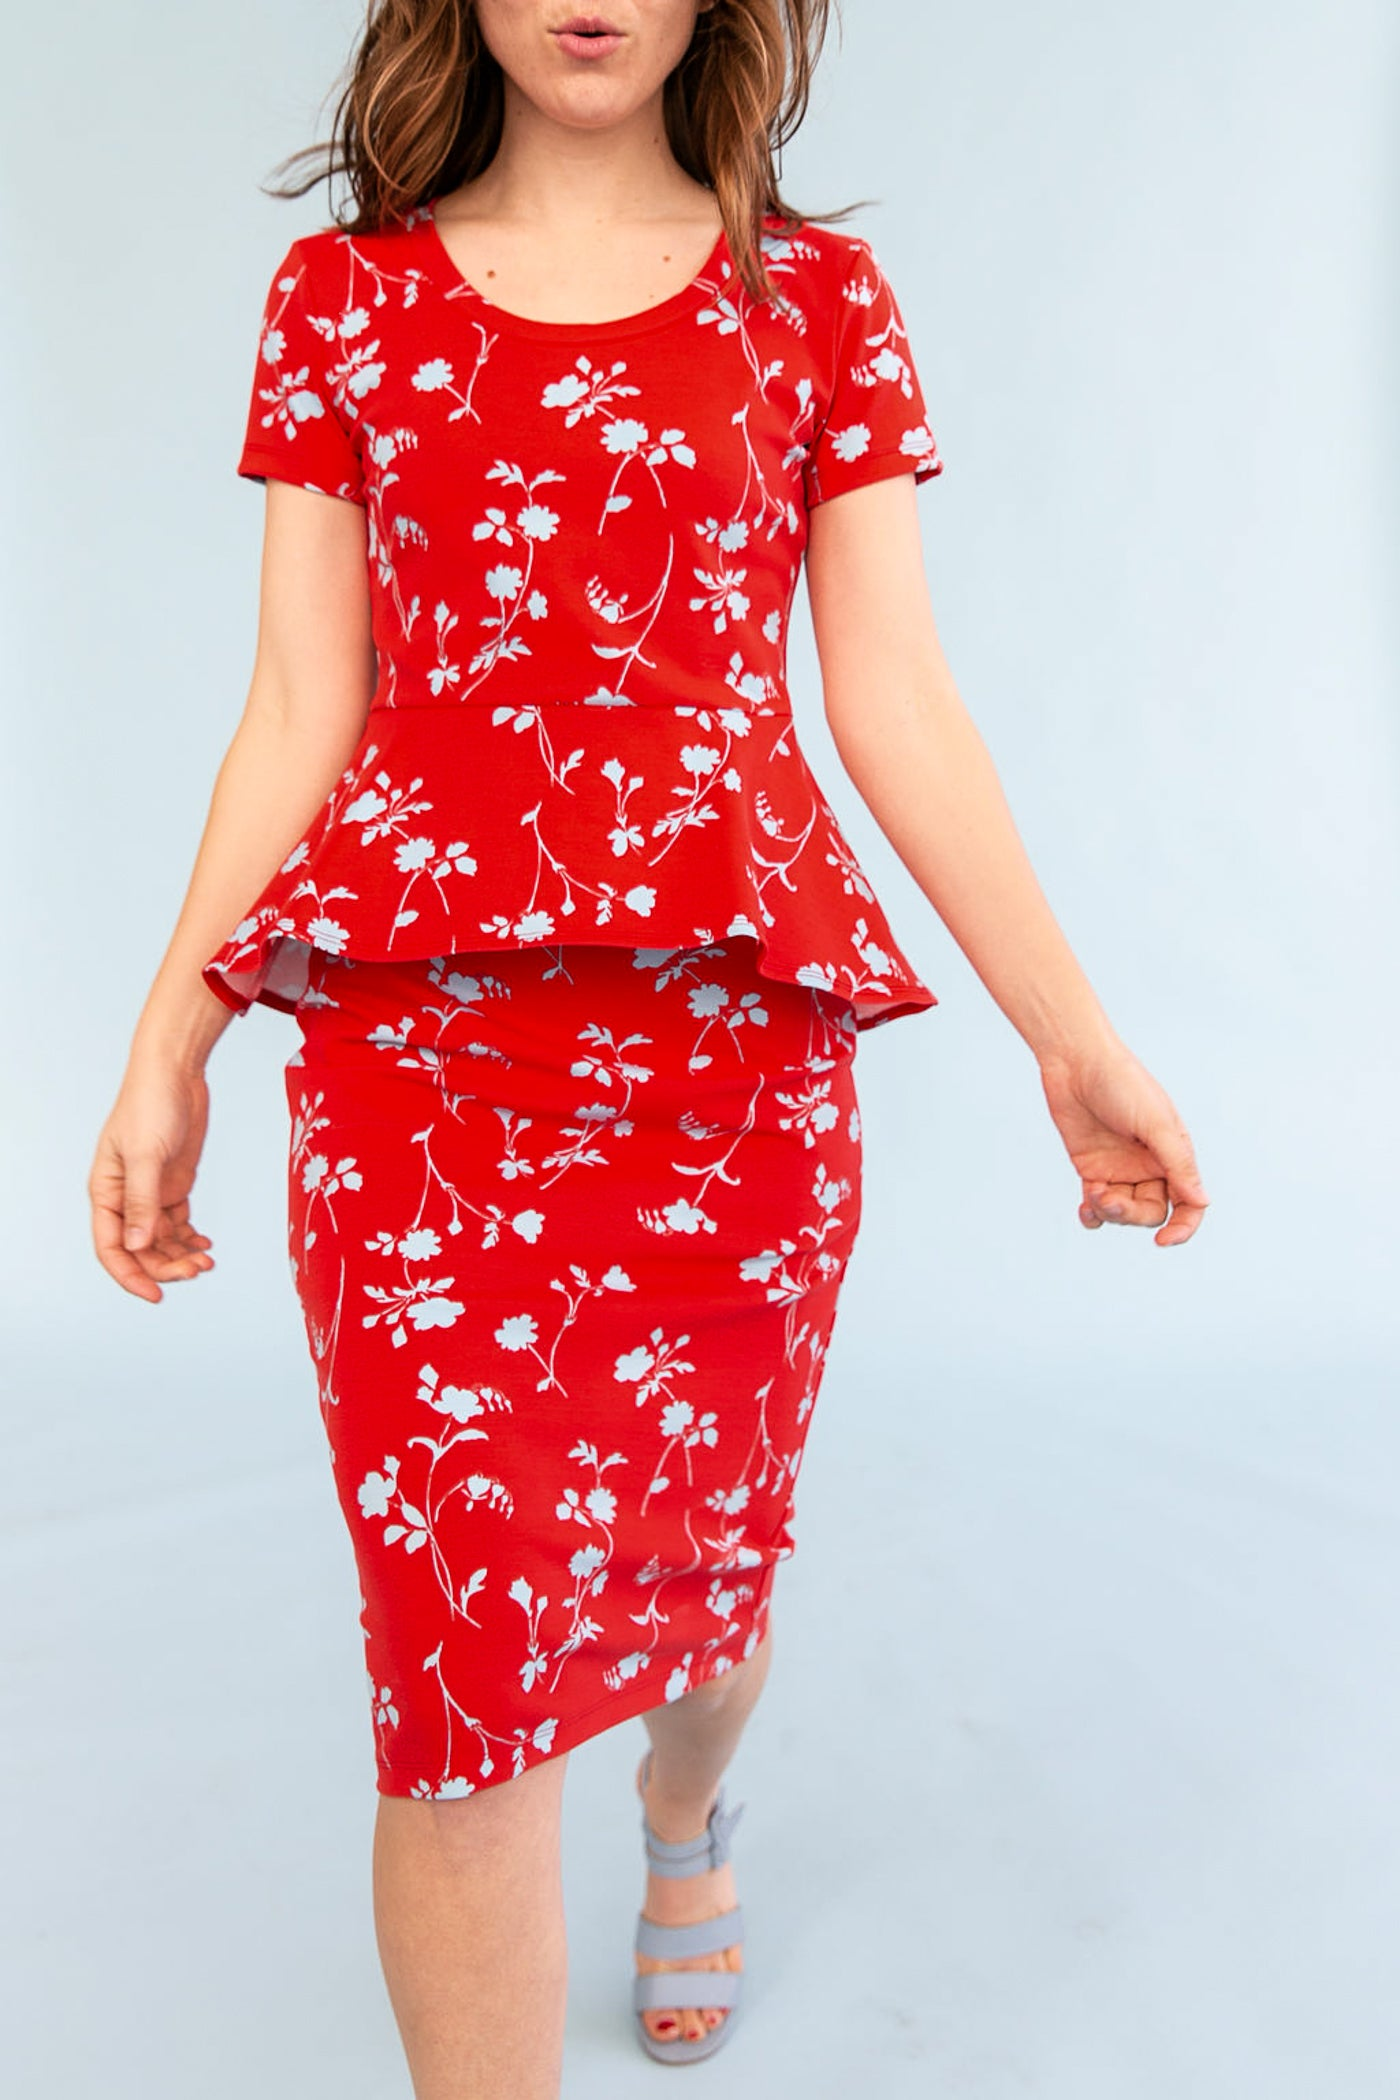 Sonnet James - LILY - RED FLORAL - Dress